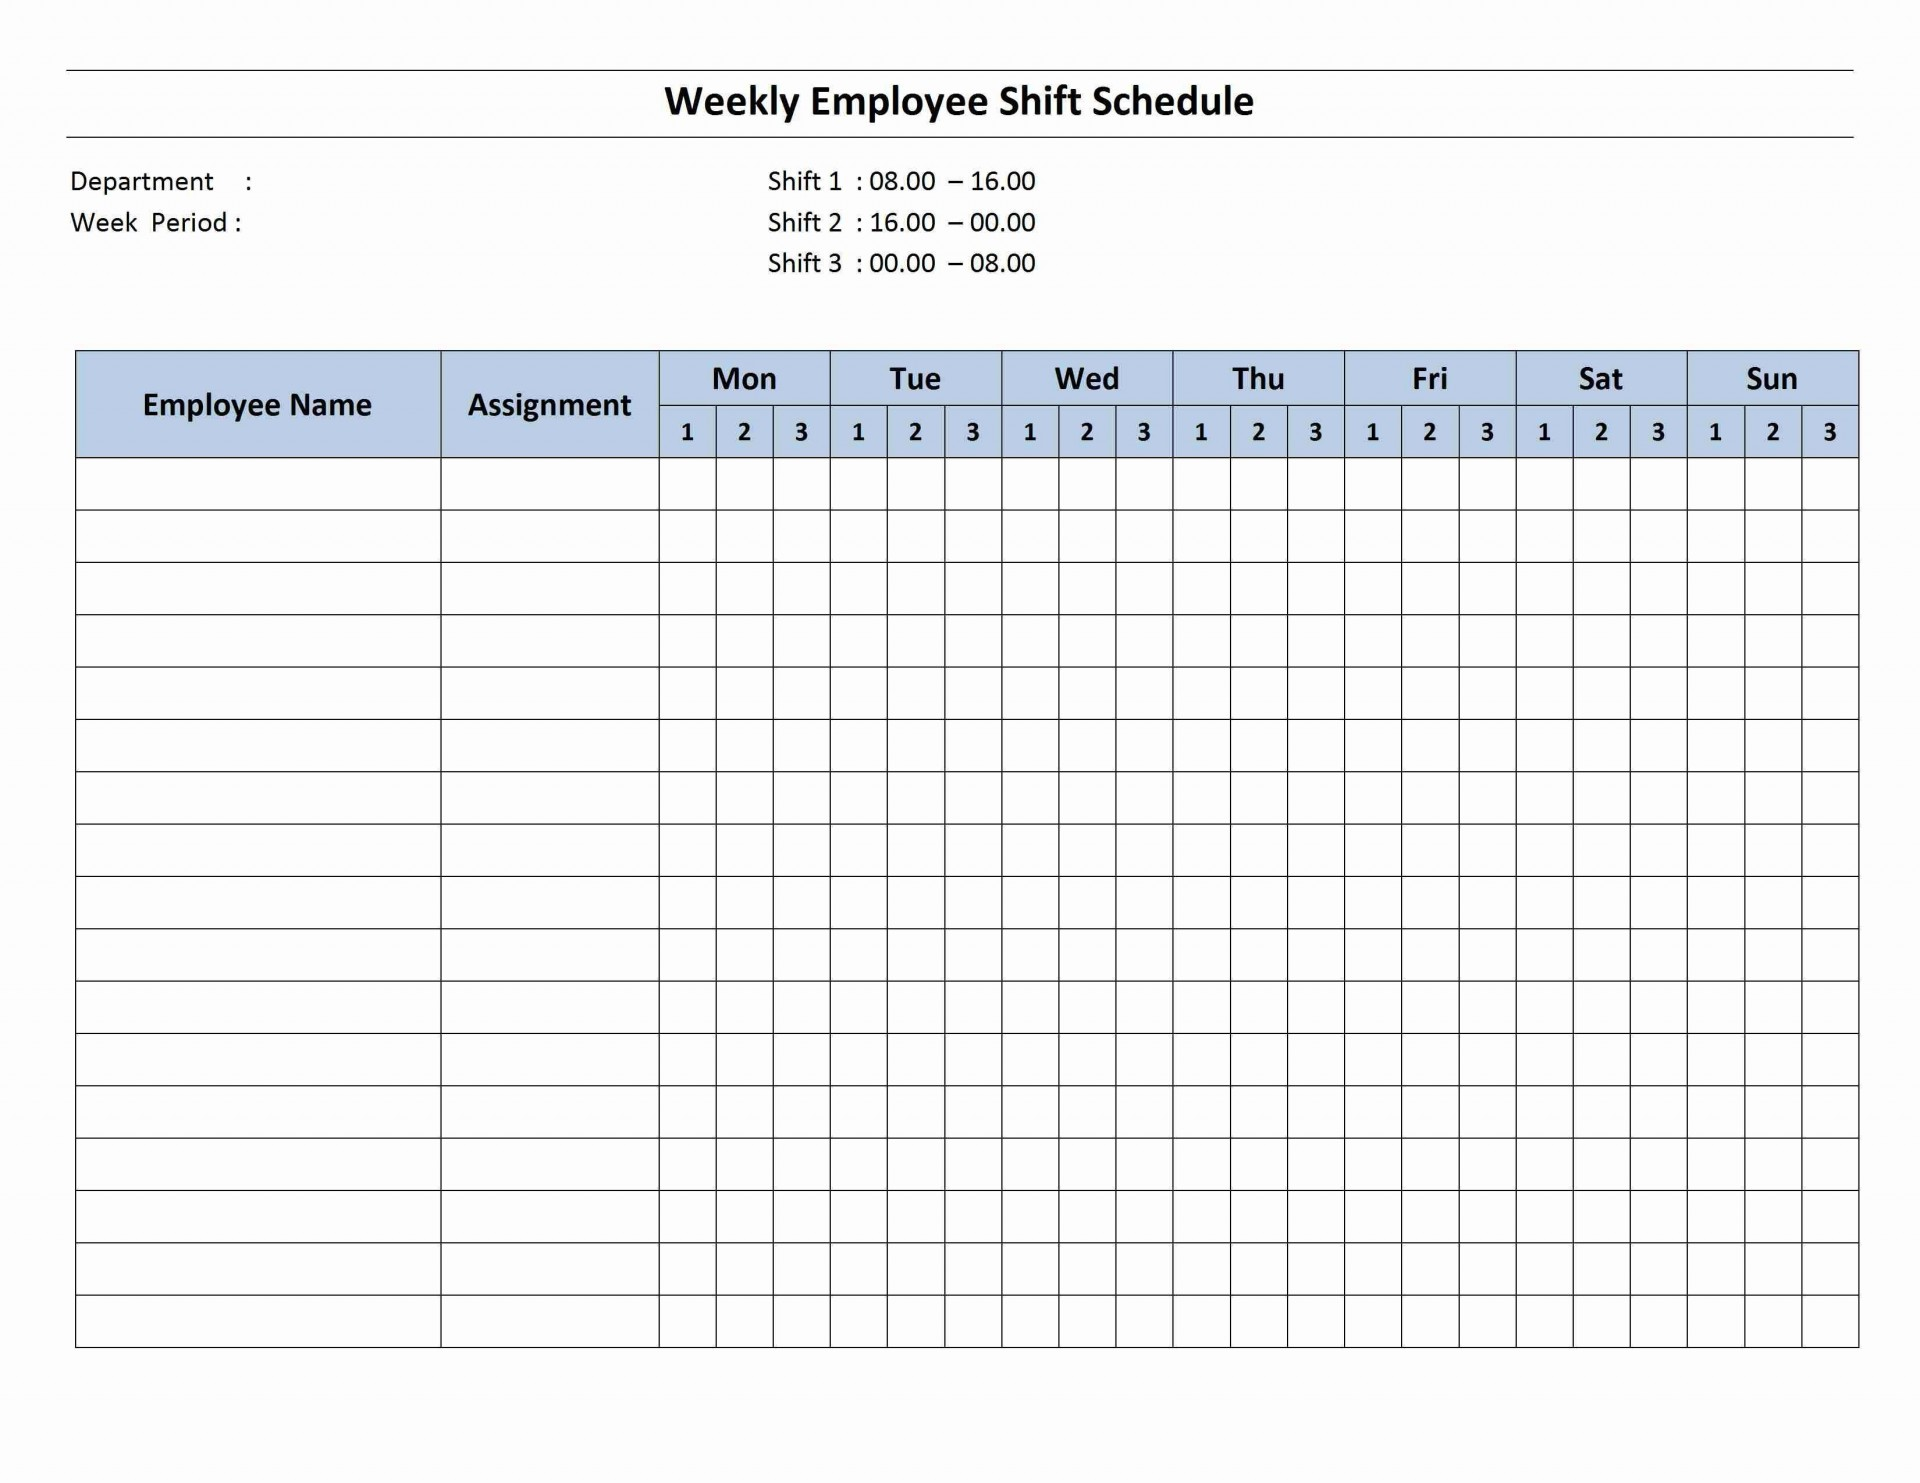 005 Stunning Employee Shift Scheduling Template Picture  Schedule Google Sheet Work Plan Word Weekly Excel Free1920